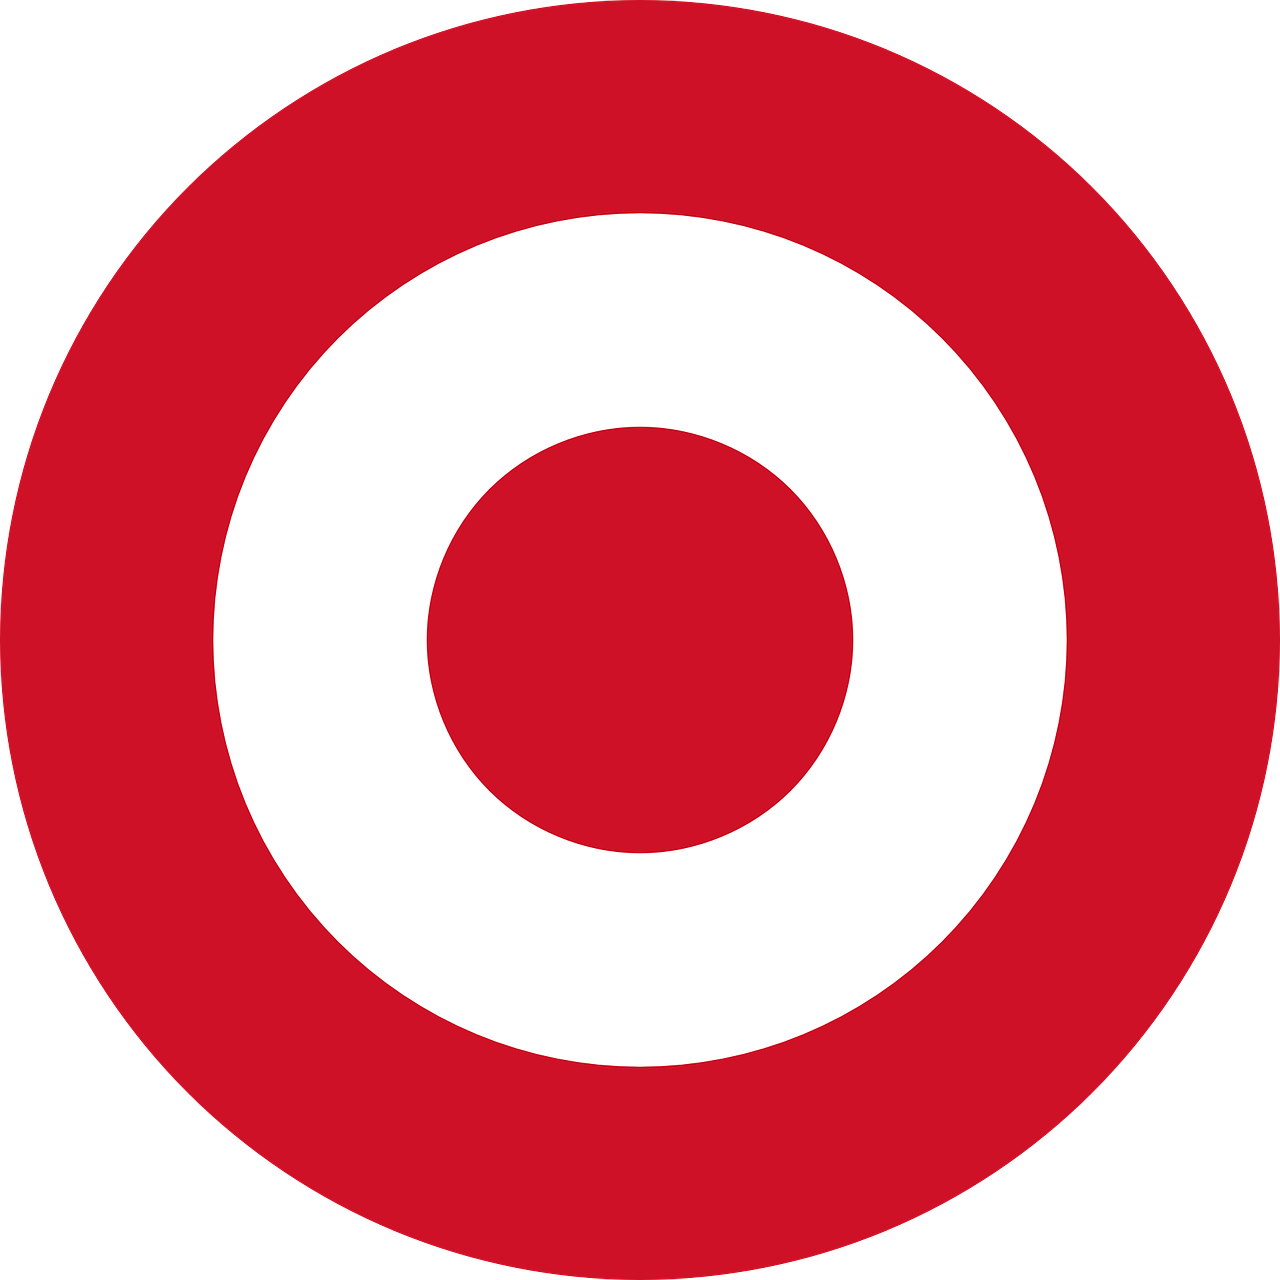 target circle bullseye free photo